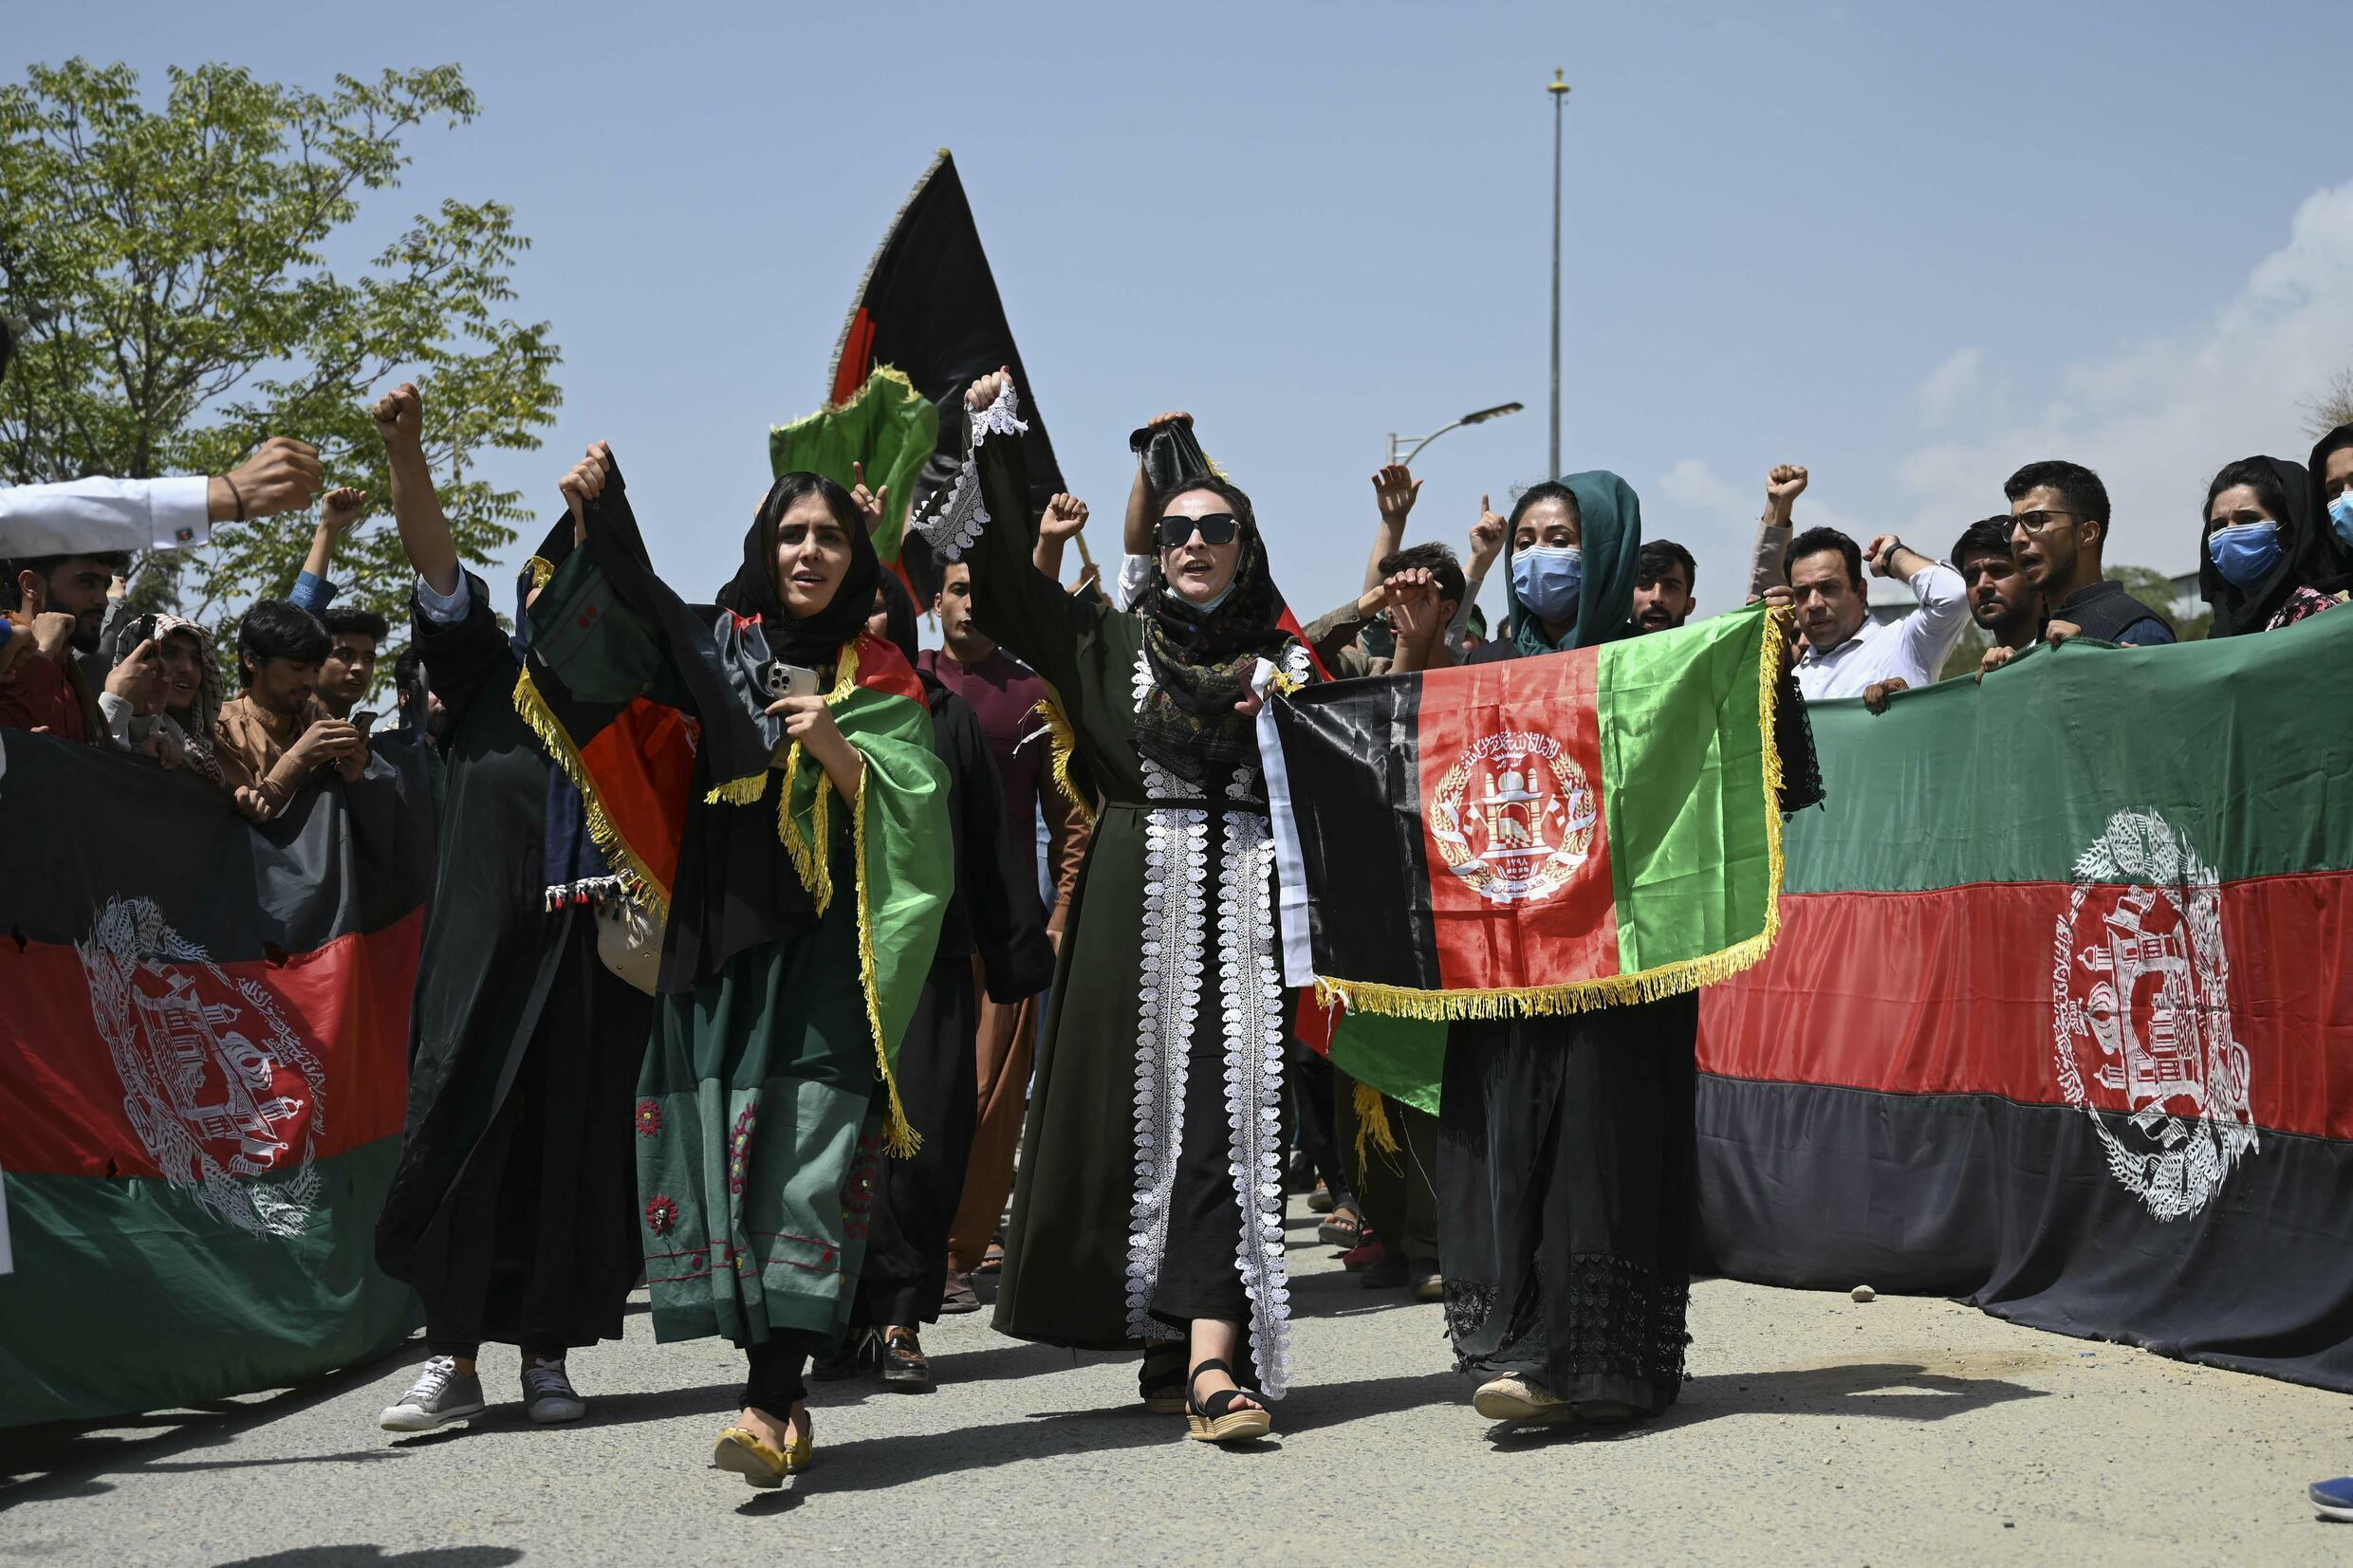 A small group of Afghans celebrates Independence Day by unfurling the national flag just days after the Taliban's conquest of the country